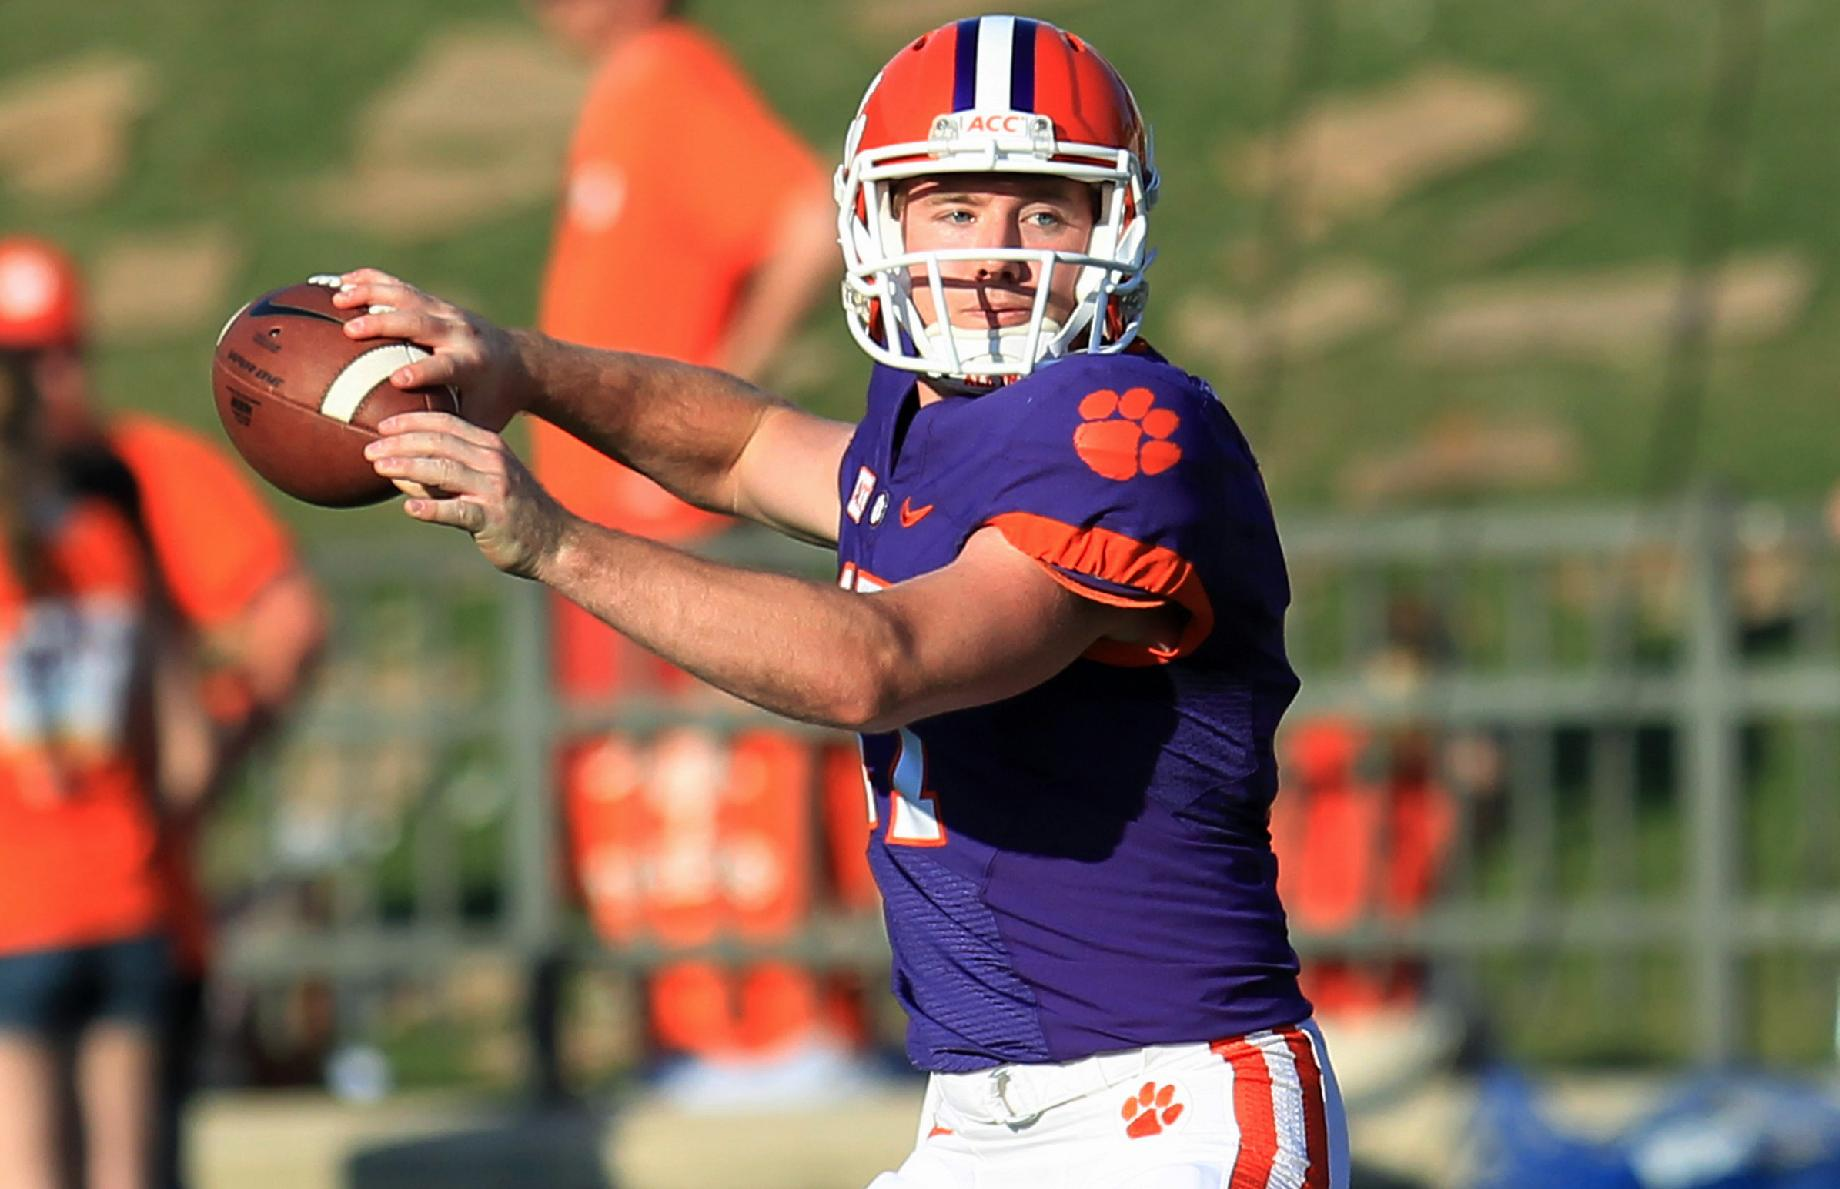 Clemson quarterback Austin McCaskill throws a pass during the NCAA college football team's spring game at Memorial Stadium in Clemson, S.C., on Saturday, April 12, 2014